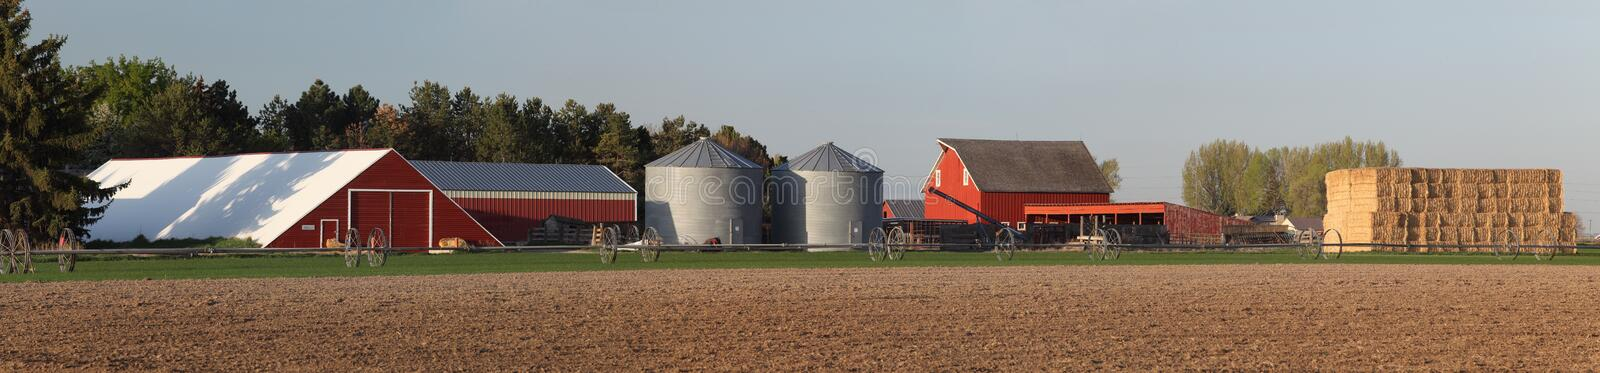 Farm Scene with hay and buildings. A freshly planted wheat field with irrigation equipment, and farm buildings in the background stock image